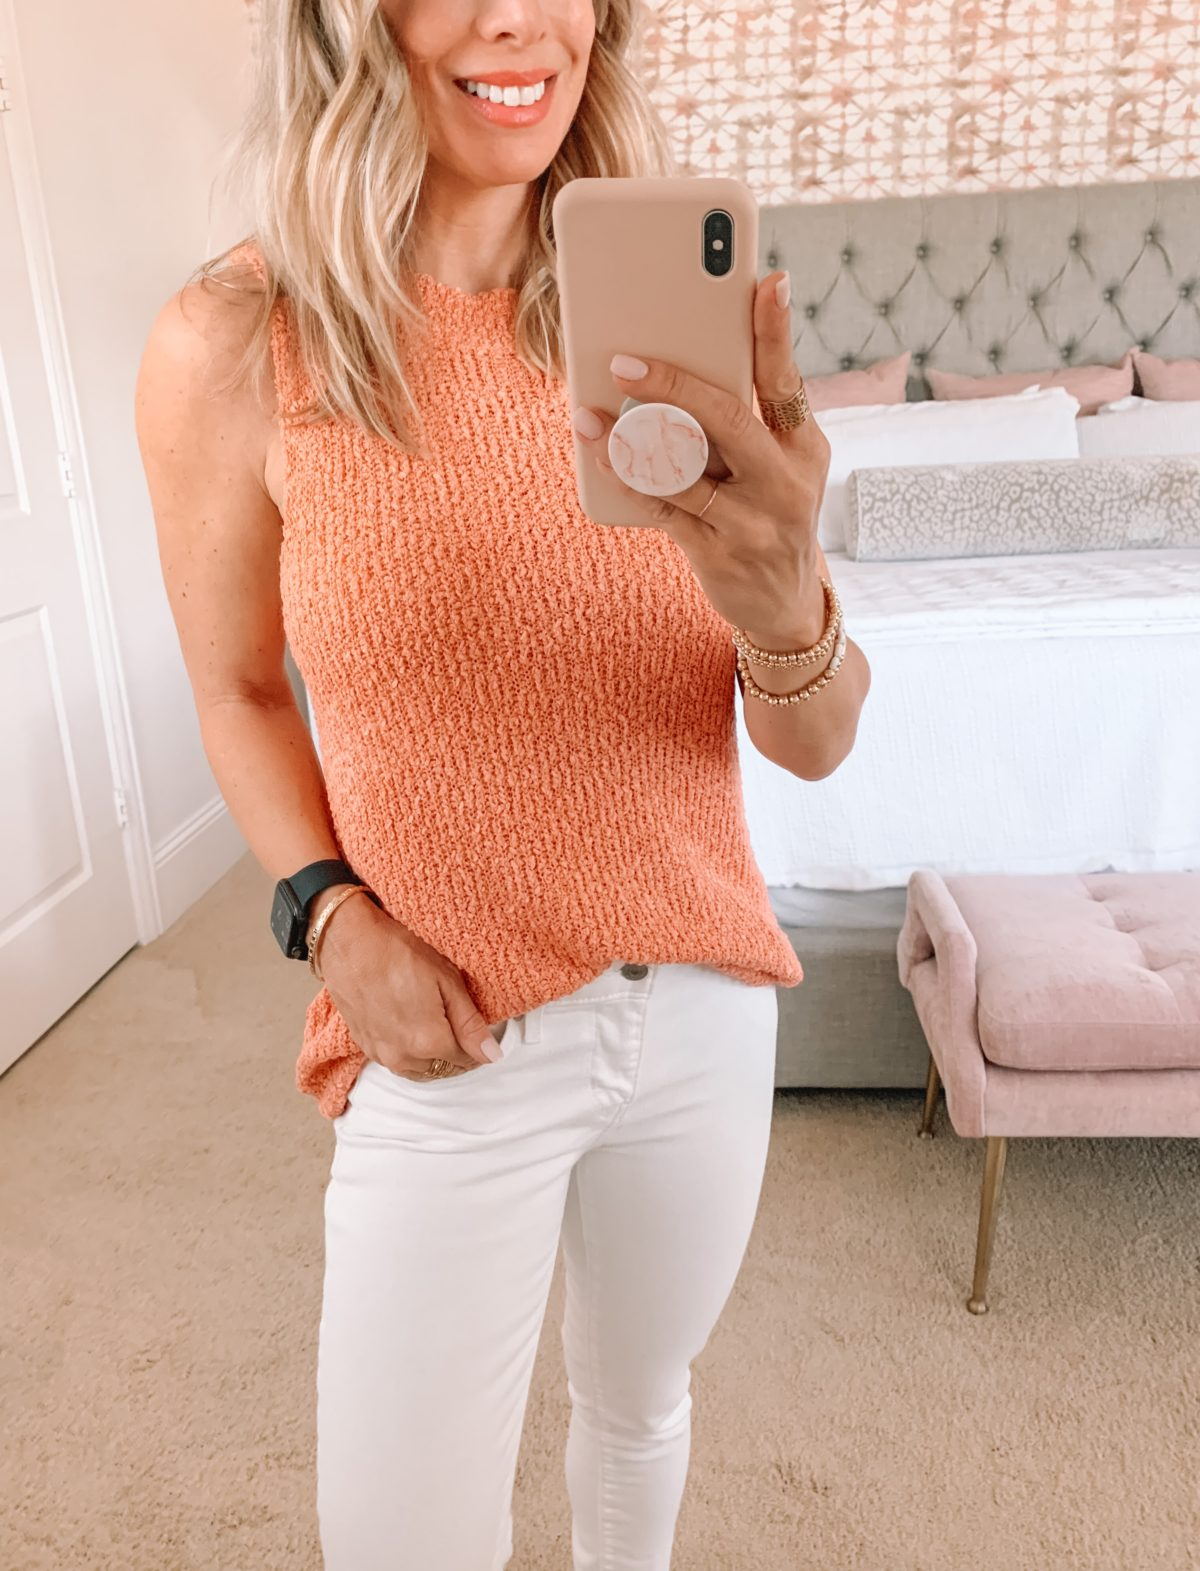 Amazon women's outfit